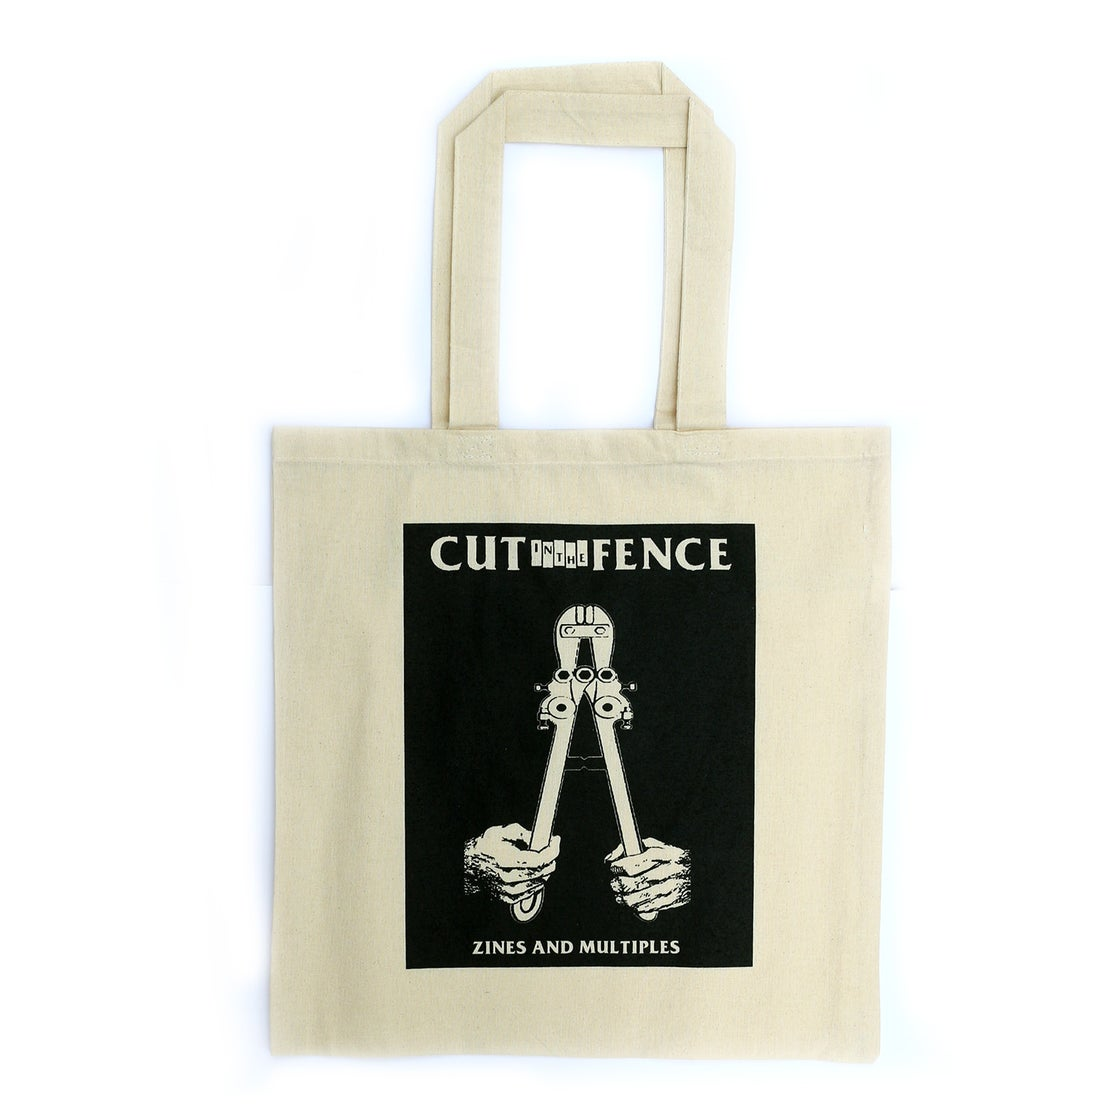 Image of MASTER KEY TOTE - CUT IN THE FENCE